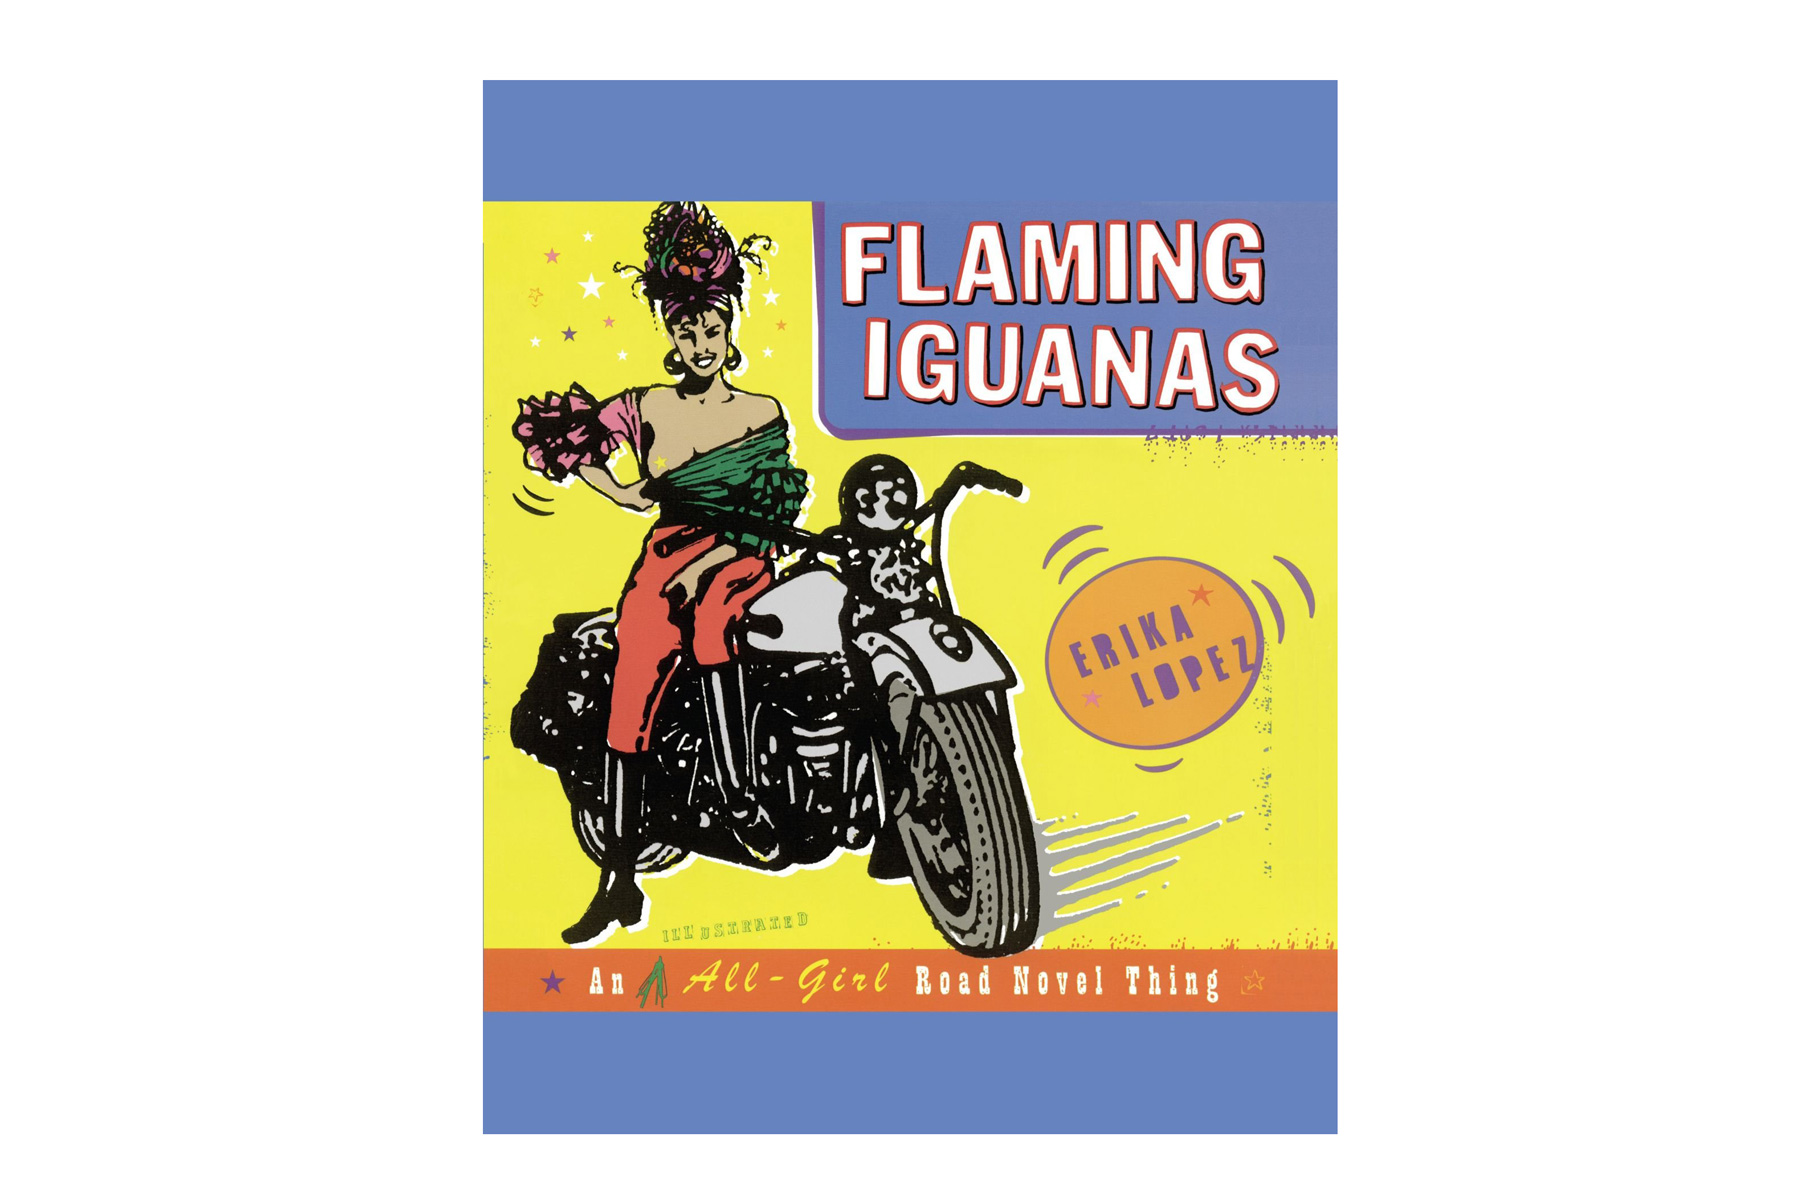 Flaming Iguanas: An Illustrated All-Girl Road Novel Thing, by Erika Lopez